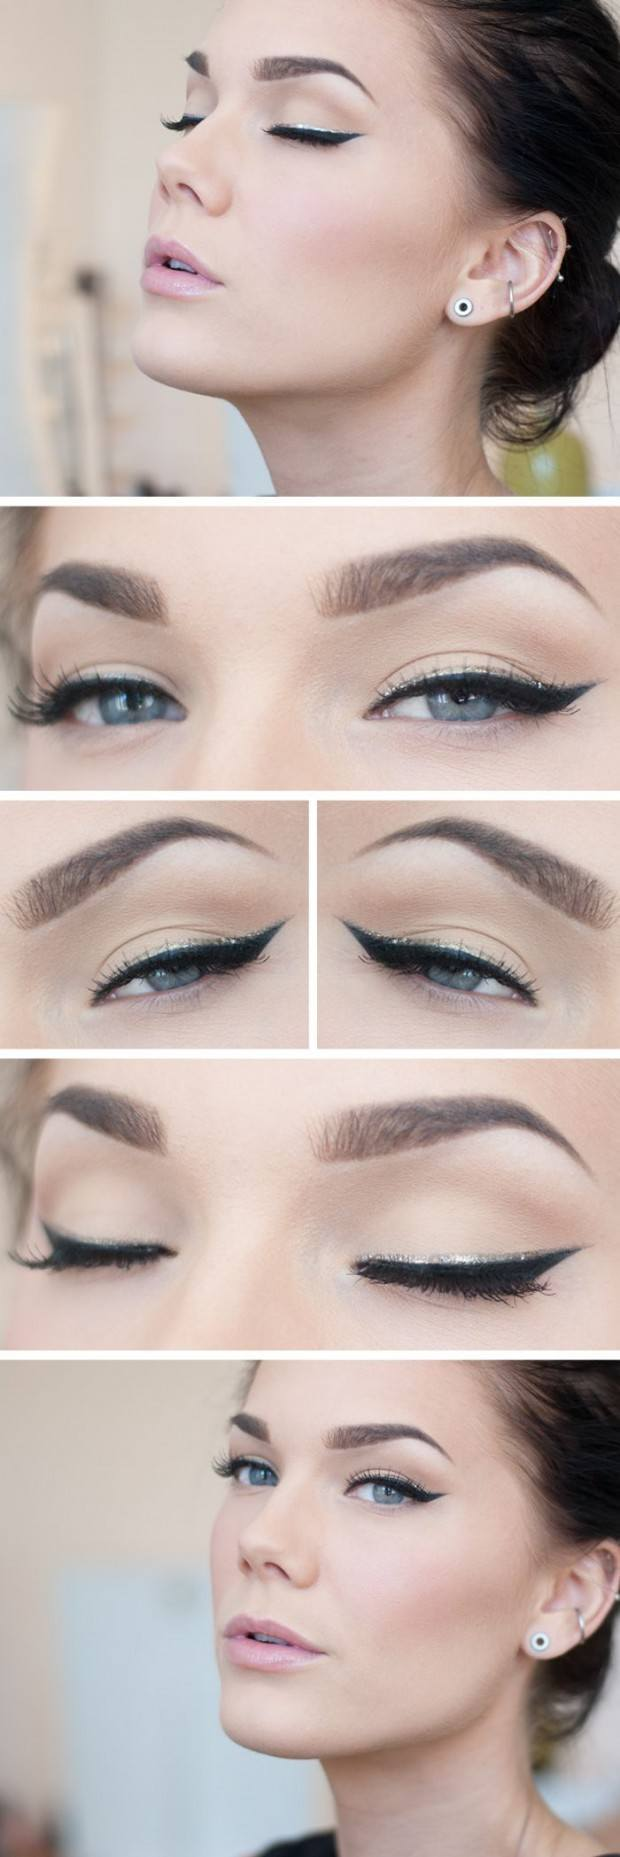 Easy Makeup Tutorial And Style For Android: 15 Easy And Stylish Eye Makeup Tutorials